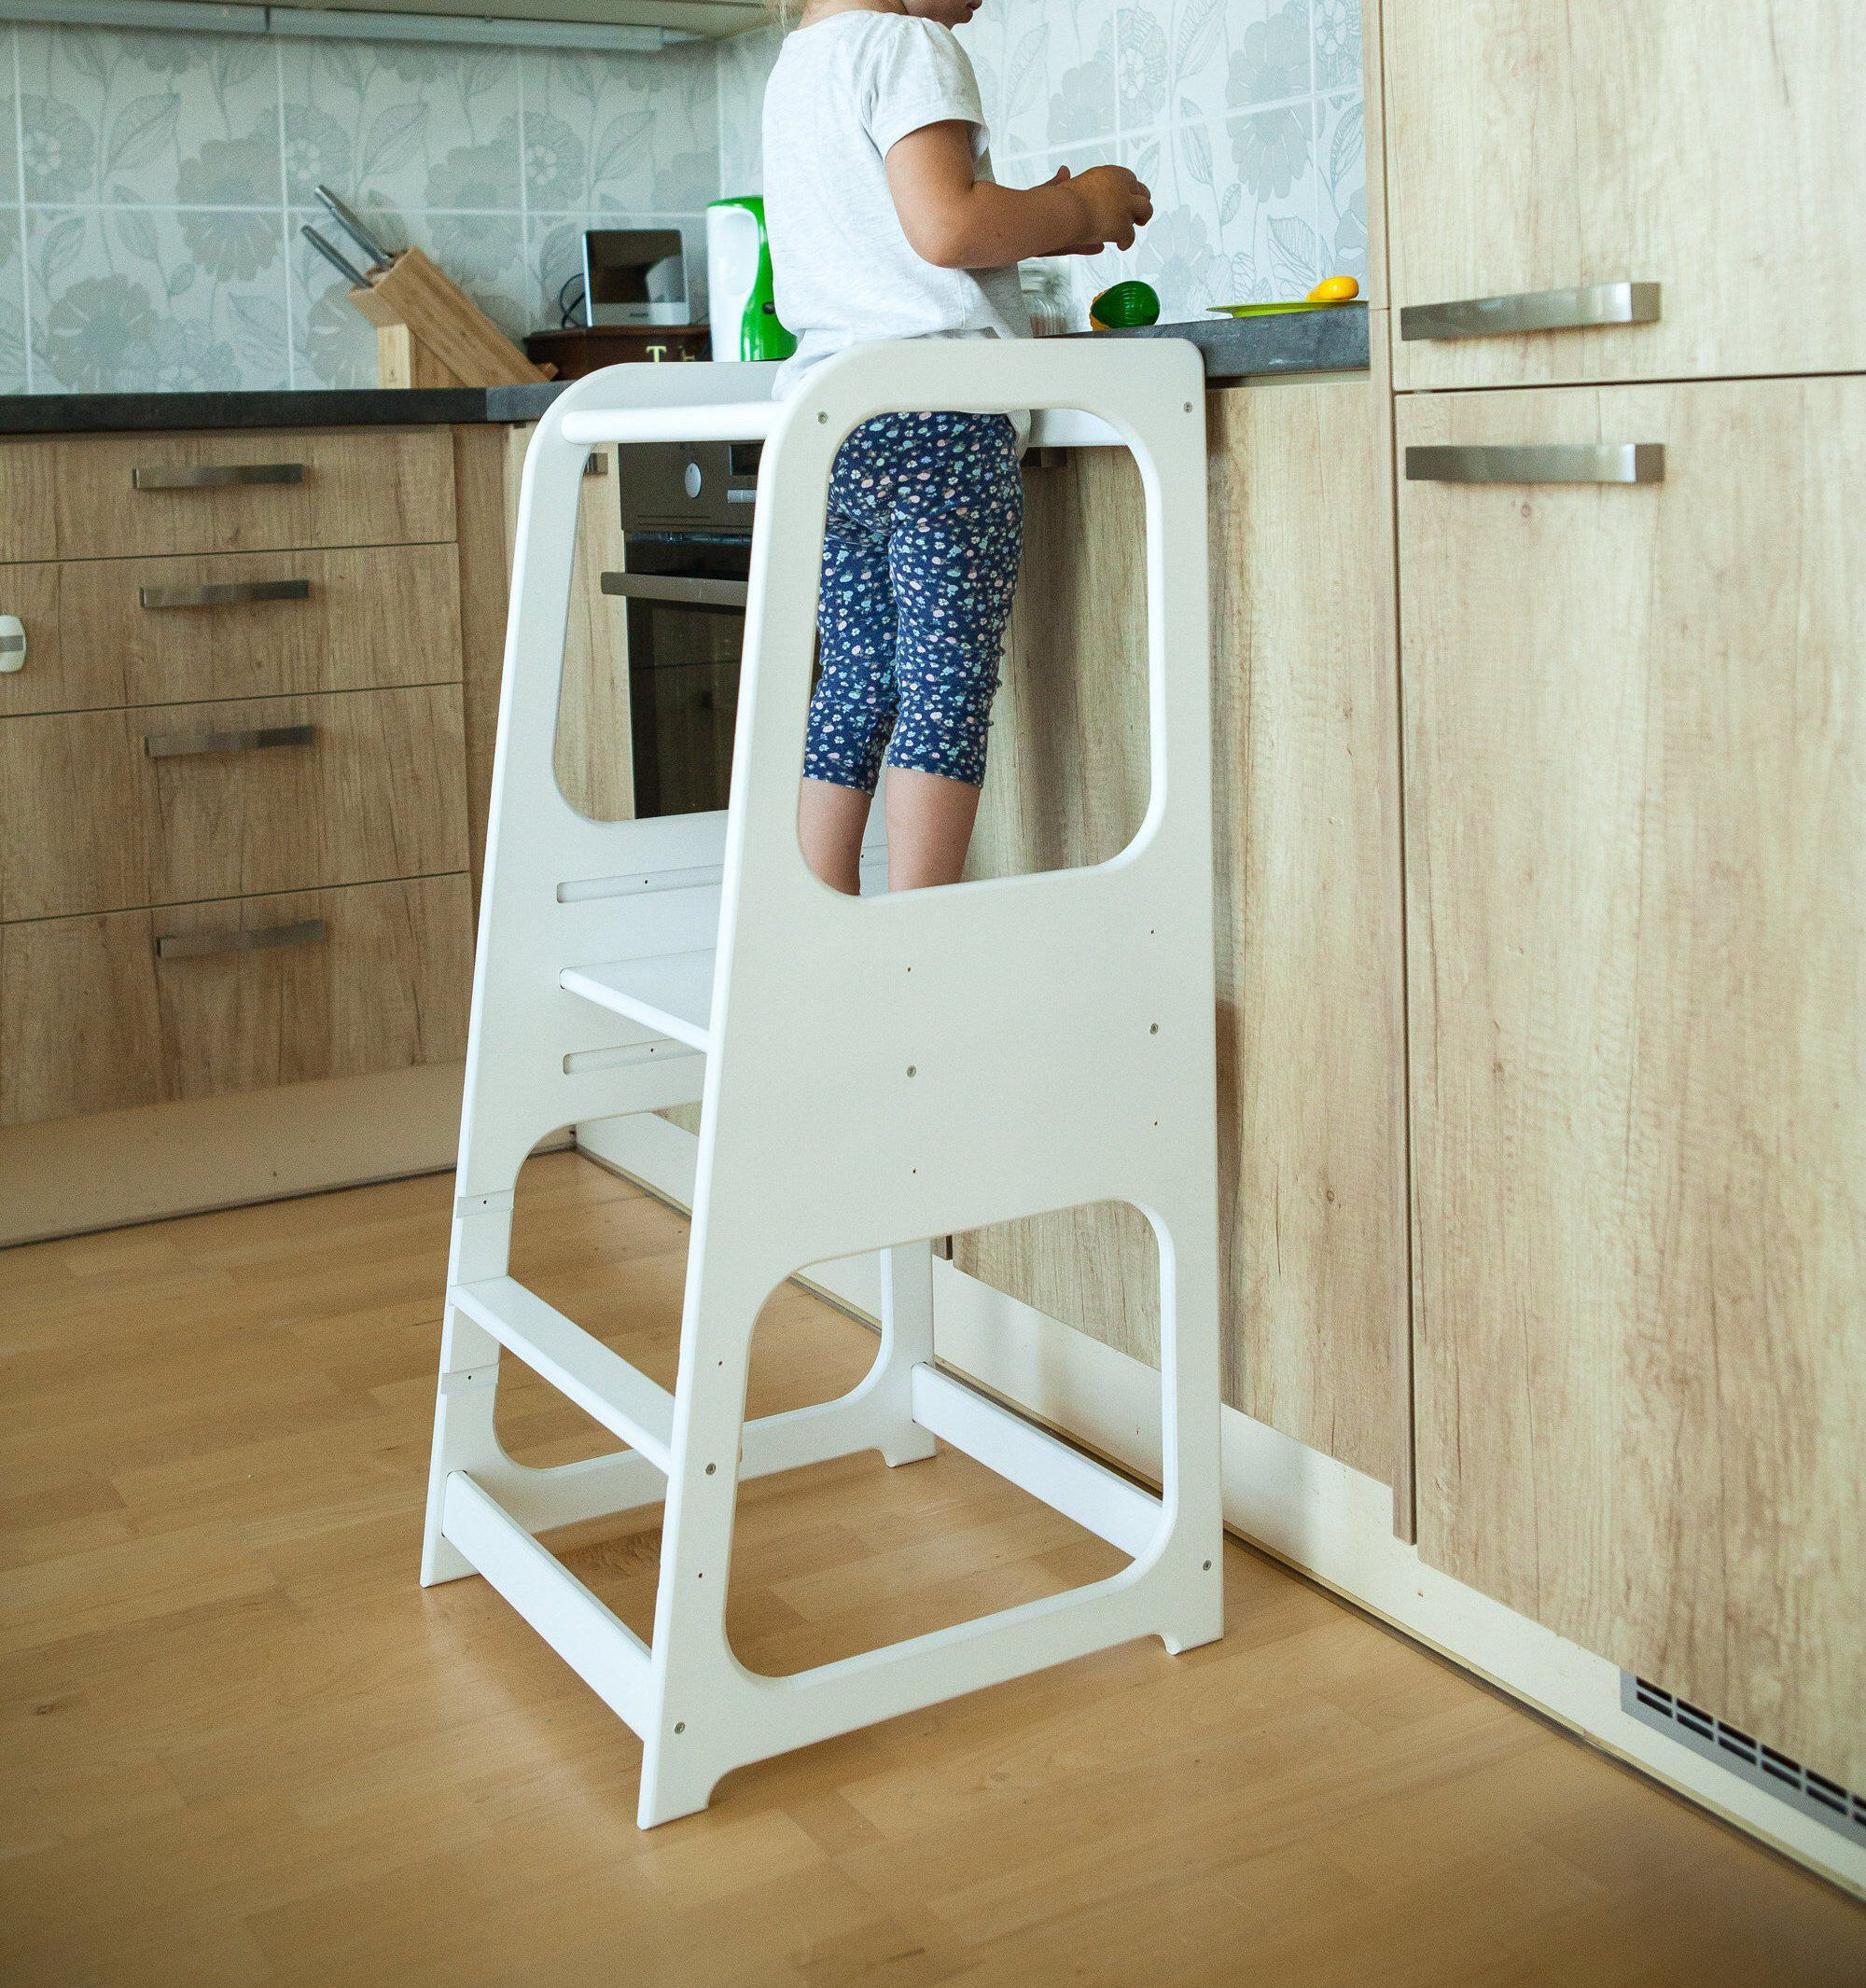 Admirable Learning Tower Kitchen Helper Kitchen Stool Safety Stool Gmtry Best Dining Table And Chair Ideas Images Gmtryco